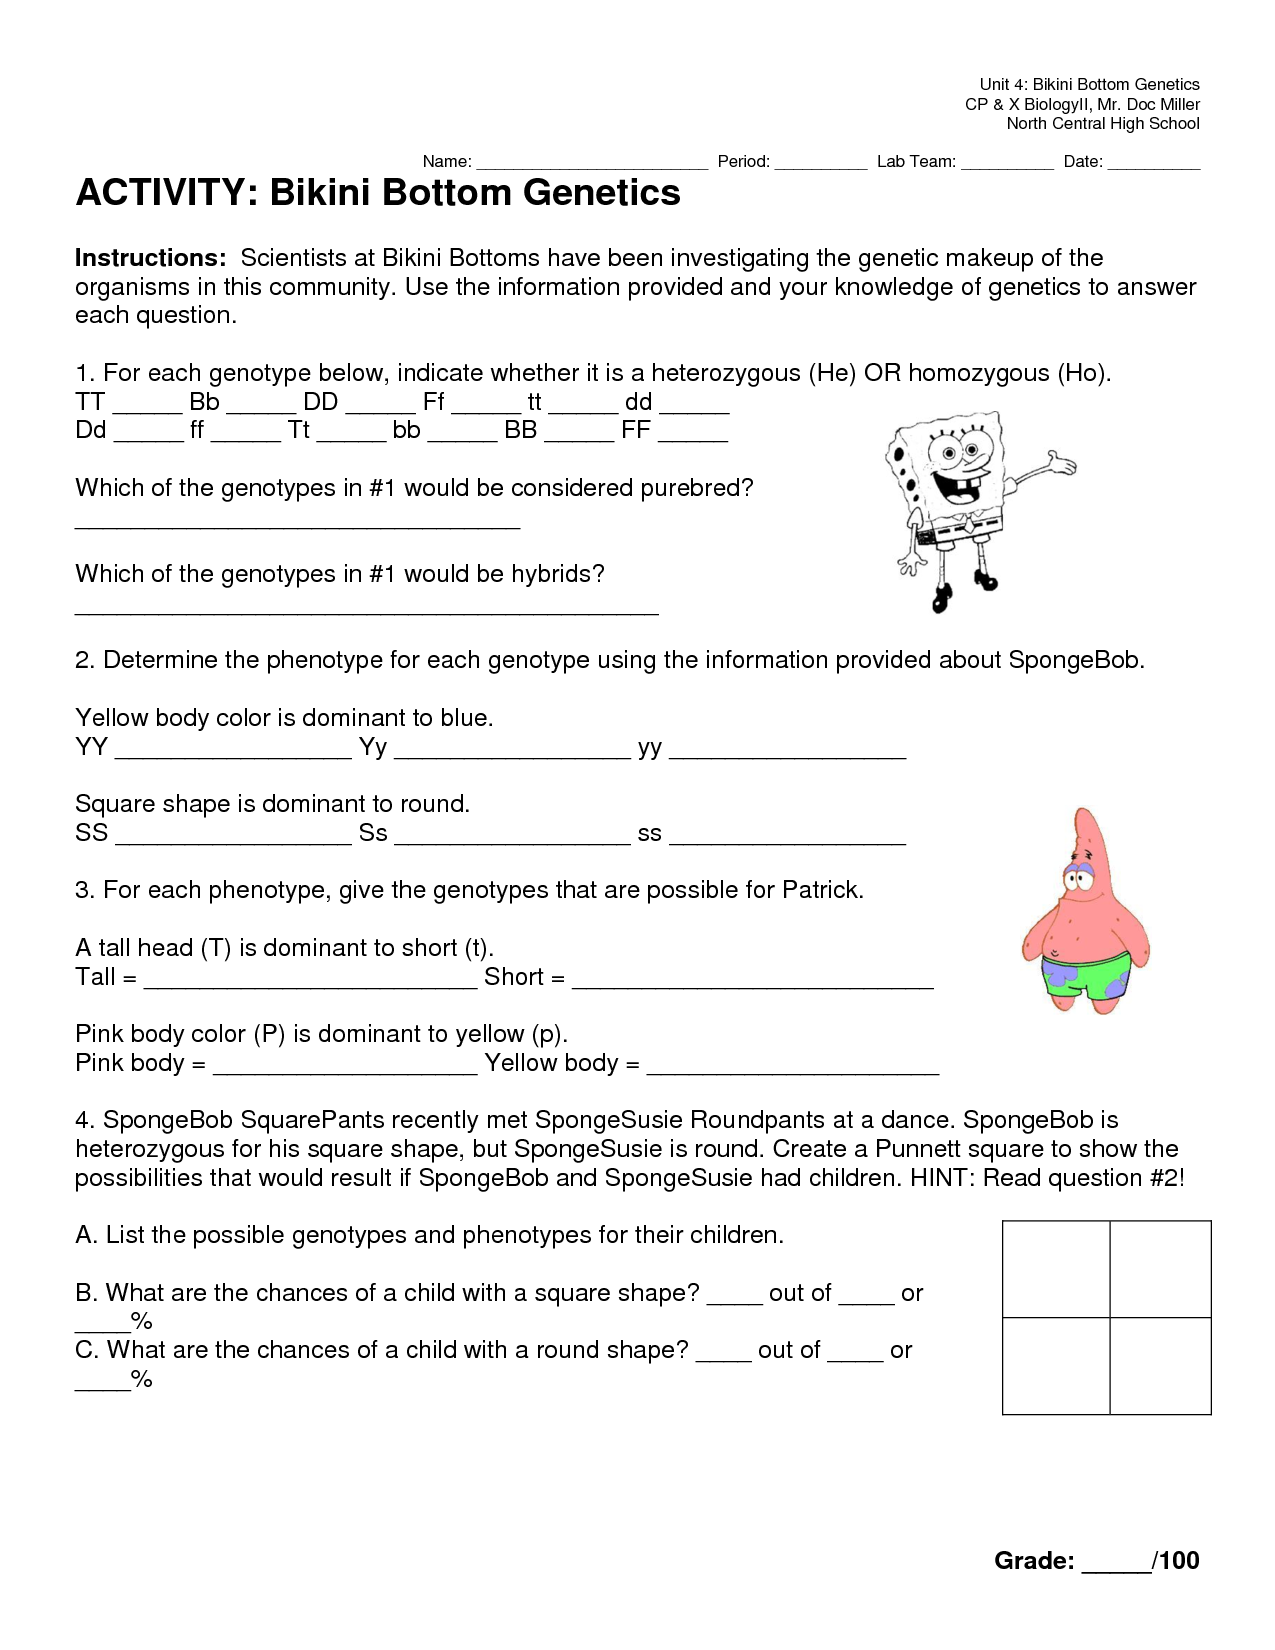 Worksheets Spongebob Science Worksheet spongebob genetics google search biology pinterest search